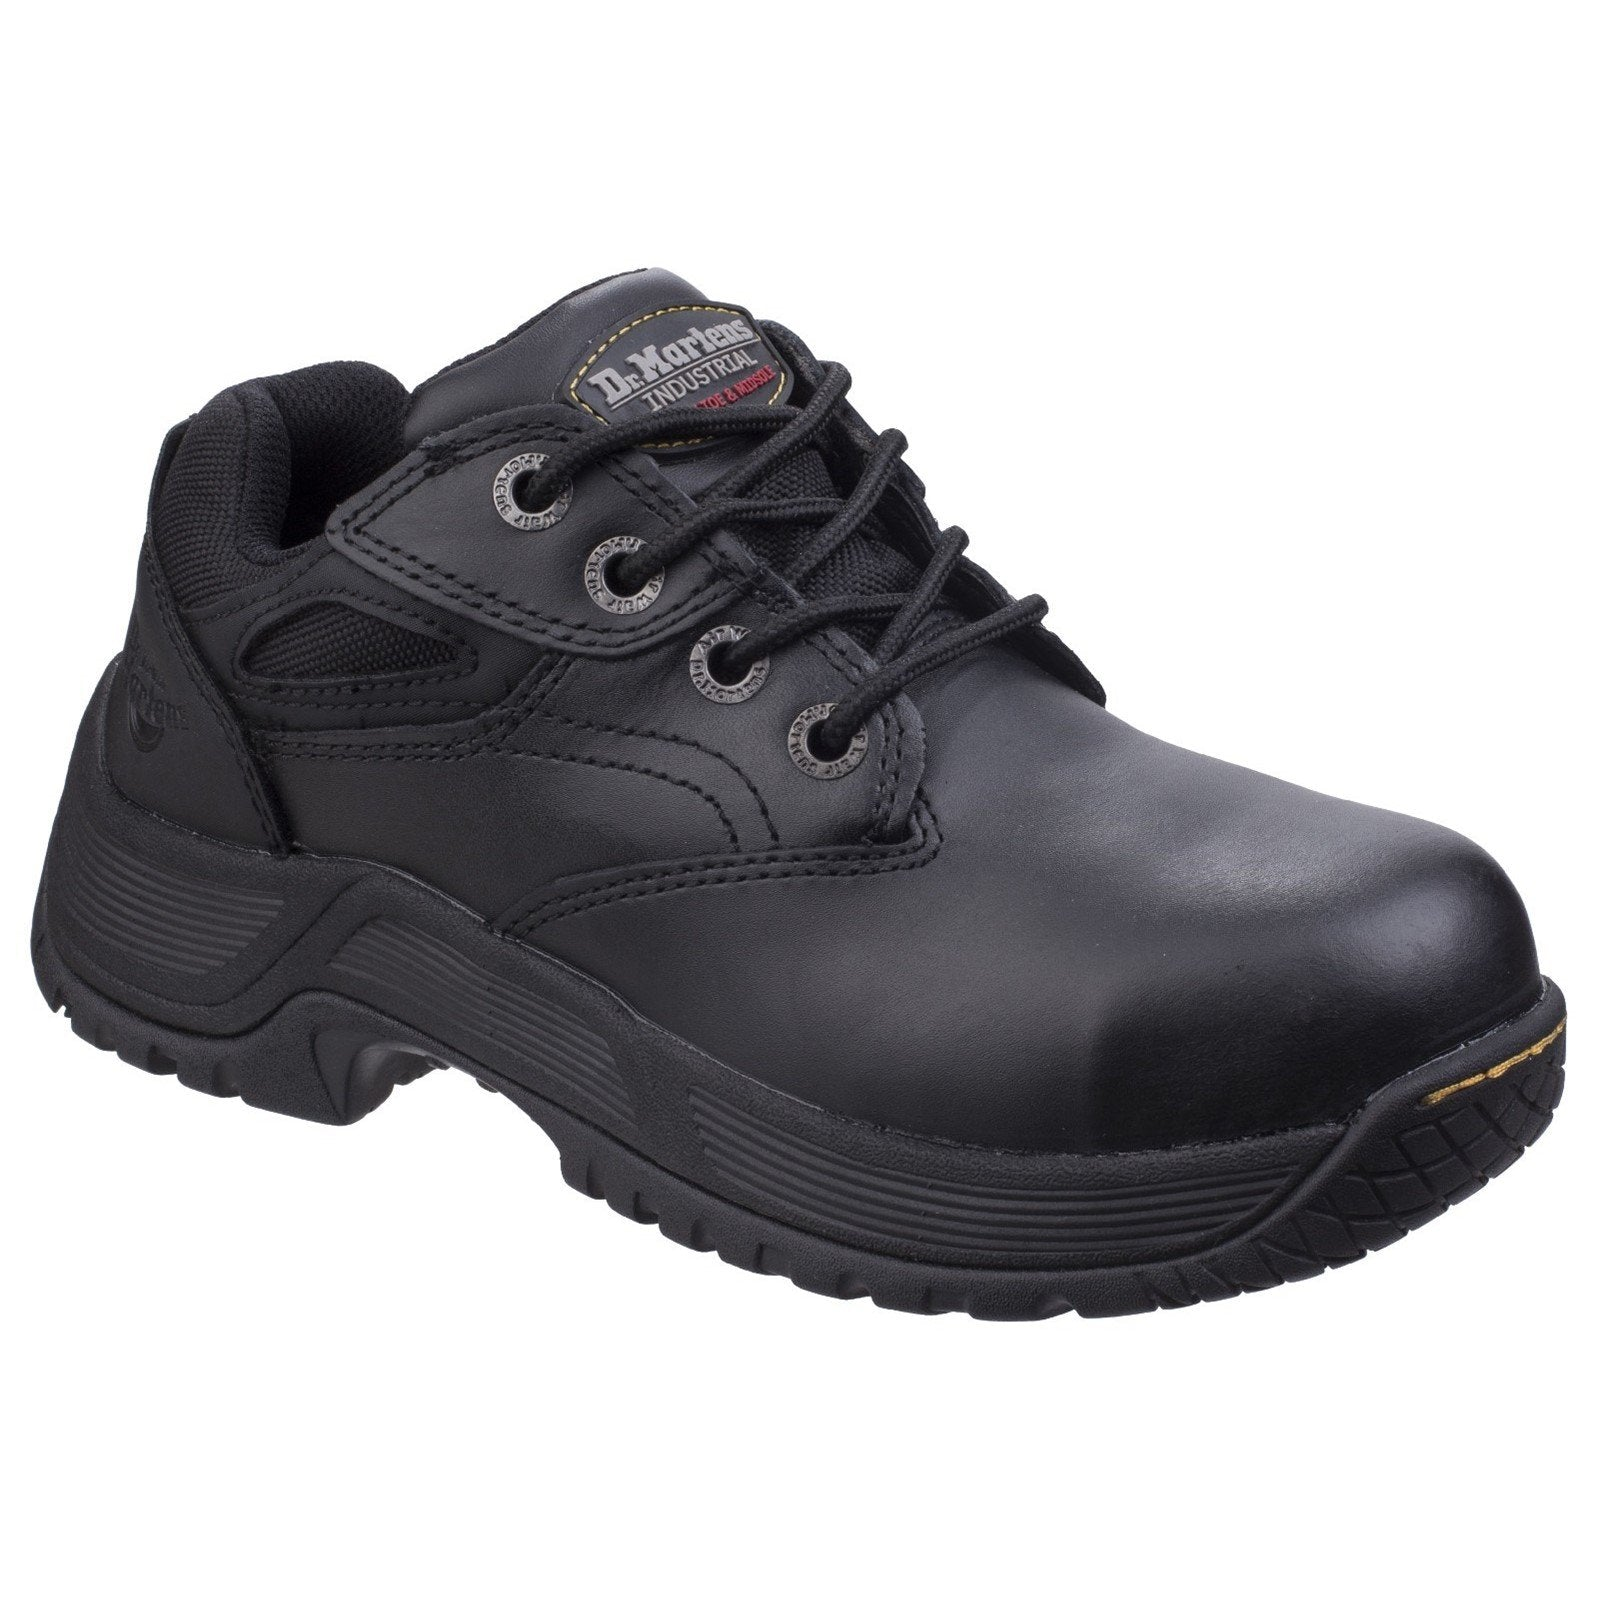 Dr Martens Calvert Safety Shoes